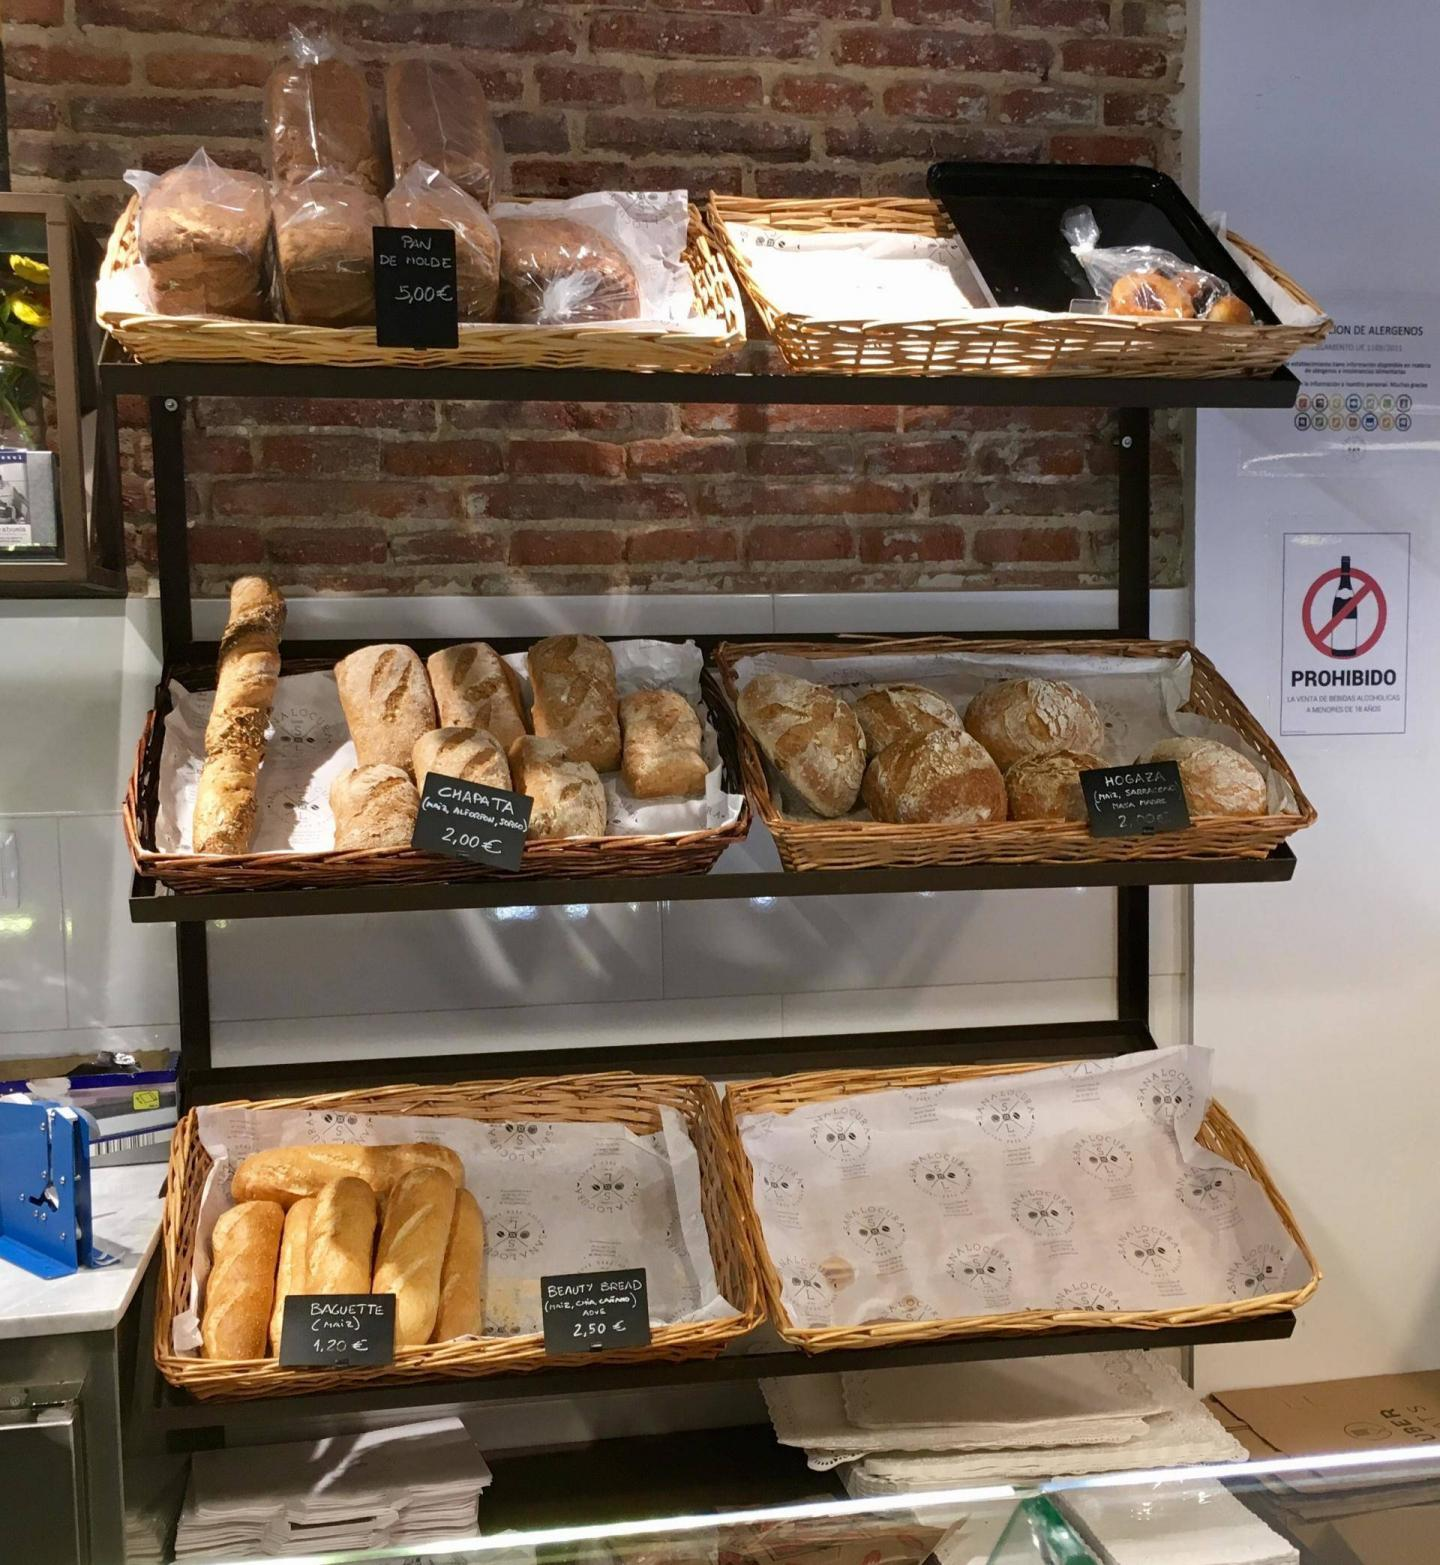 adventures of a gluten free globetrekker Gluten Free Madrid: Sana Locura Bakery & Other Gluten Free Tips Madrid Spain